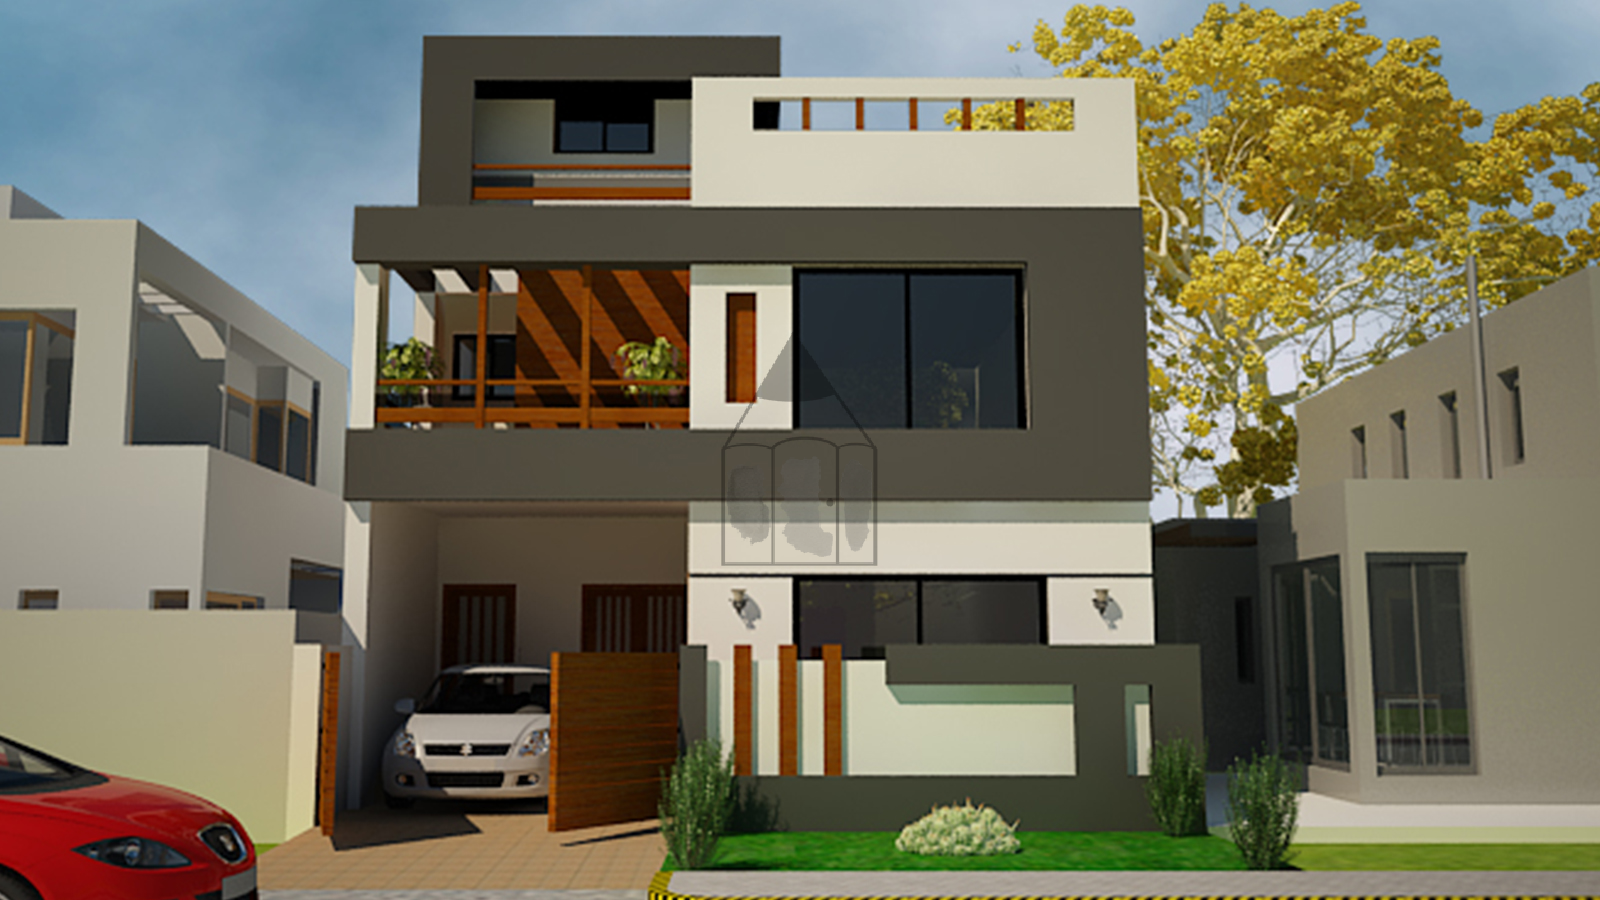 Sample Front Elevation For Small N Houses : Marla house front design this is a standard